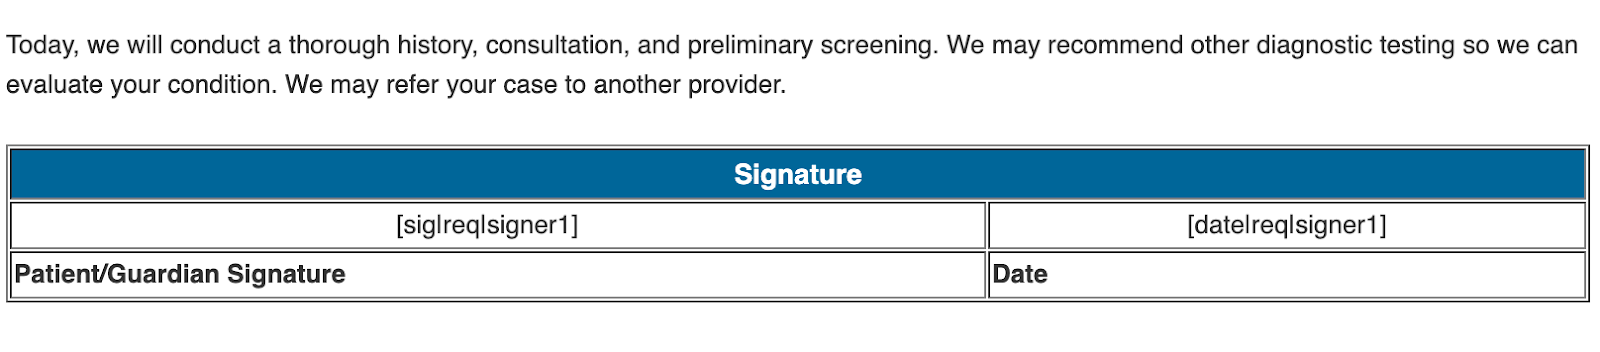 eSignature Document Field Screenshot